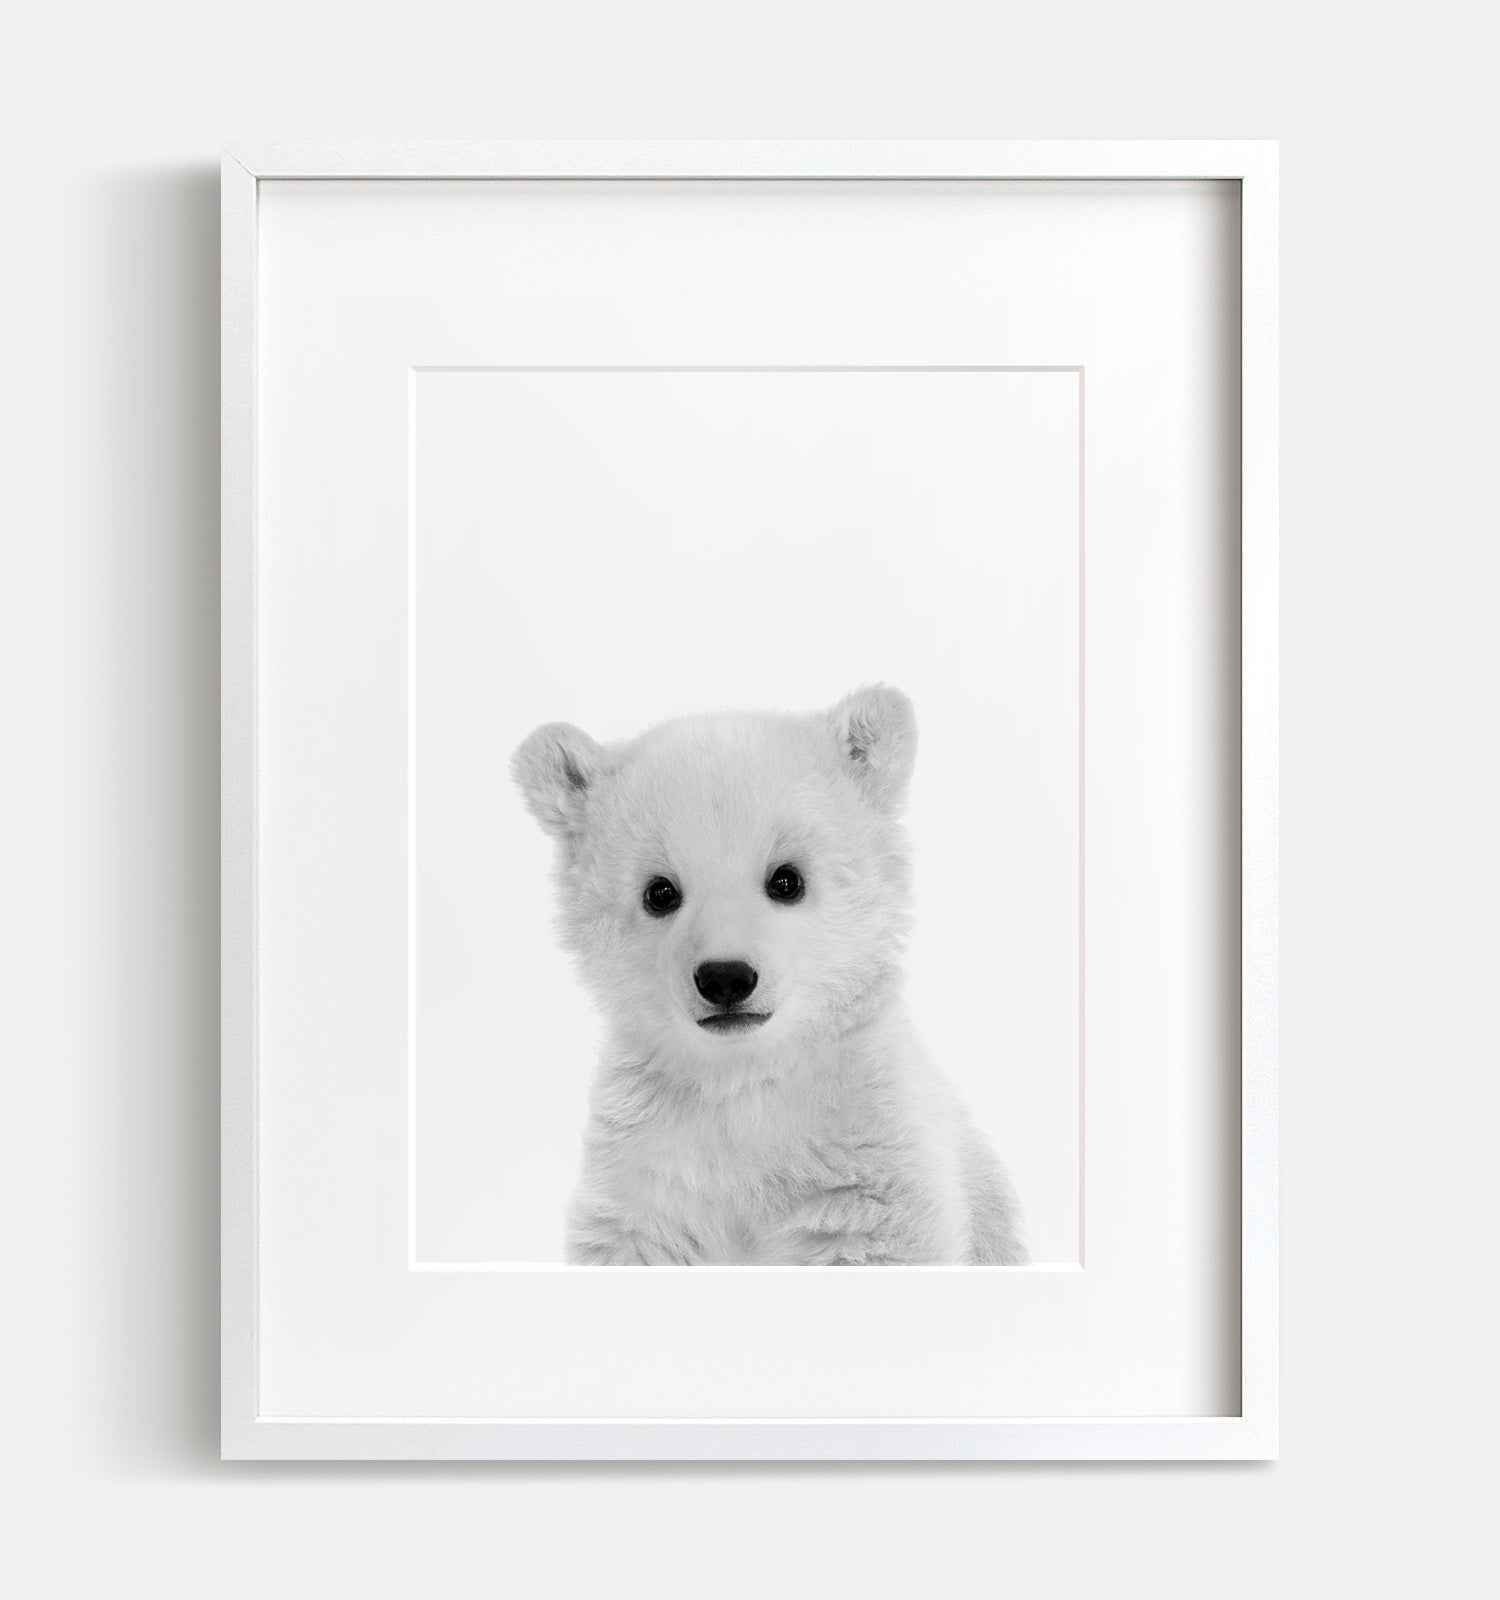 Baby Polar Bear Print Black And White The Crown Prints